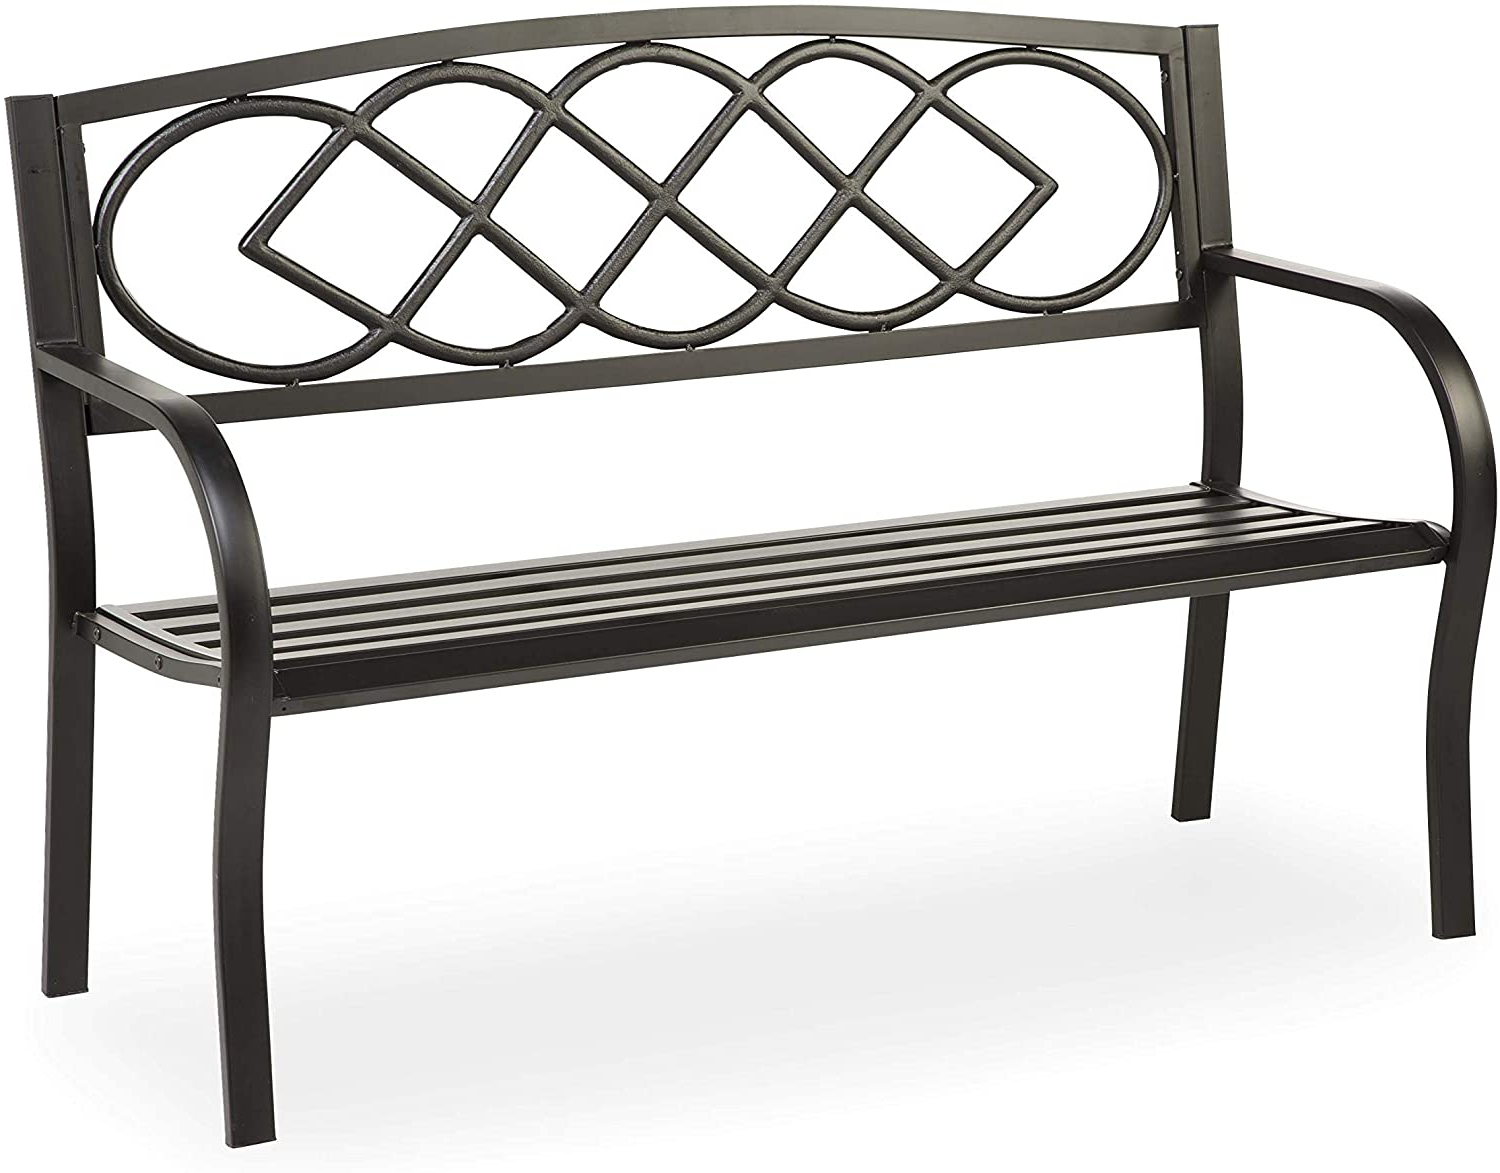 Newest Celtic Knot Iron Garden Benches In Plow & Hearth Celtic Knot Patio Garden Bench Park Yard Outdoor Furniture, Cast And Tubular Iron Metal, Powder Coat Black Finish, Classic Decorative (View 7 of 30)